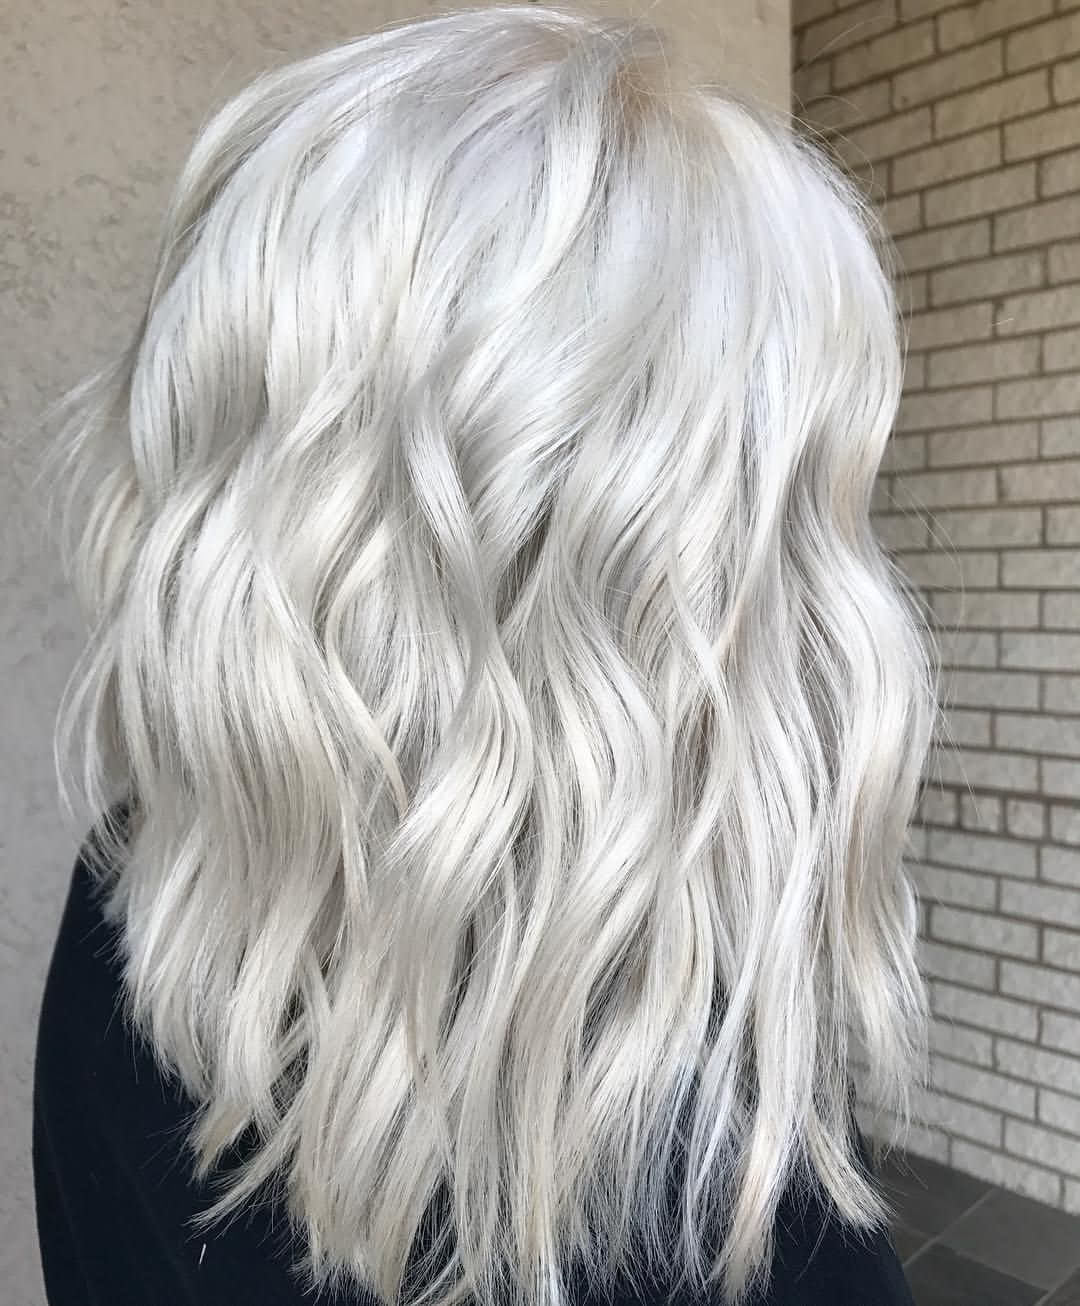 Icy Blonde Hair Color For Short Hair